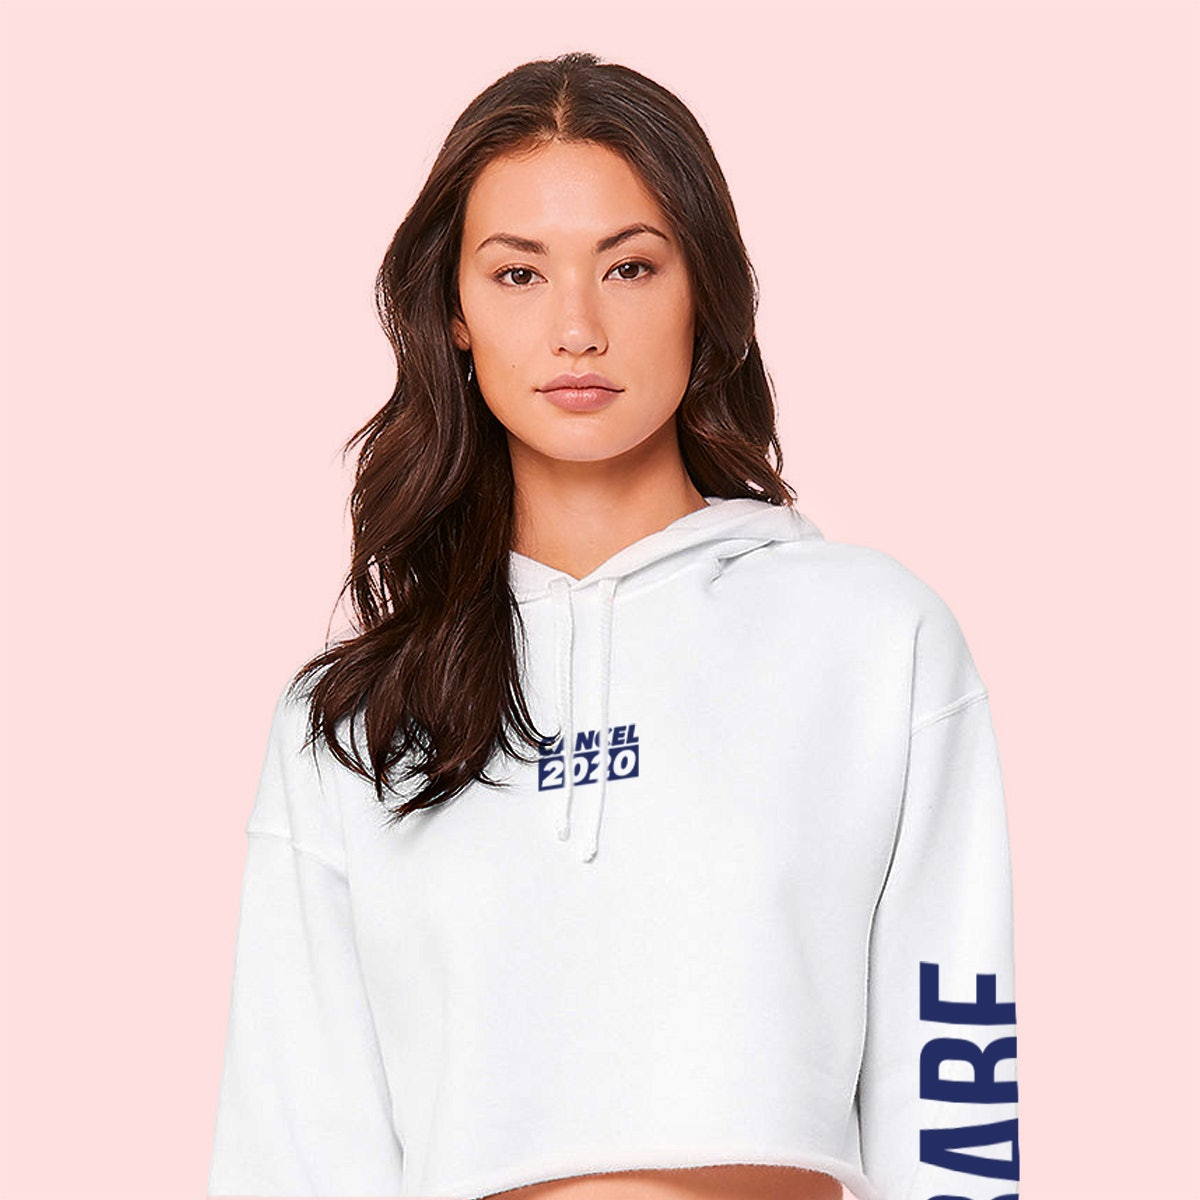 A young woman poses in a white sweatshirt from BABE Wine.